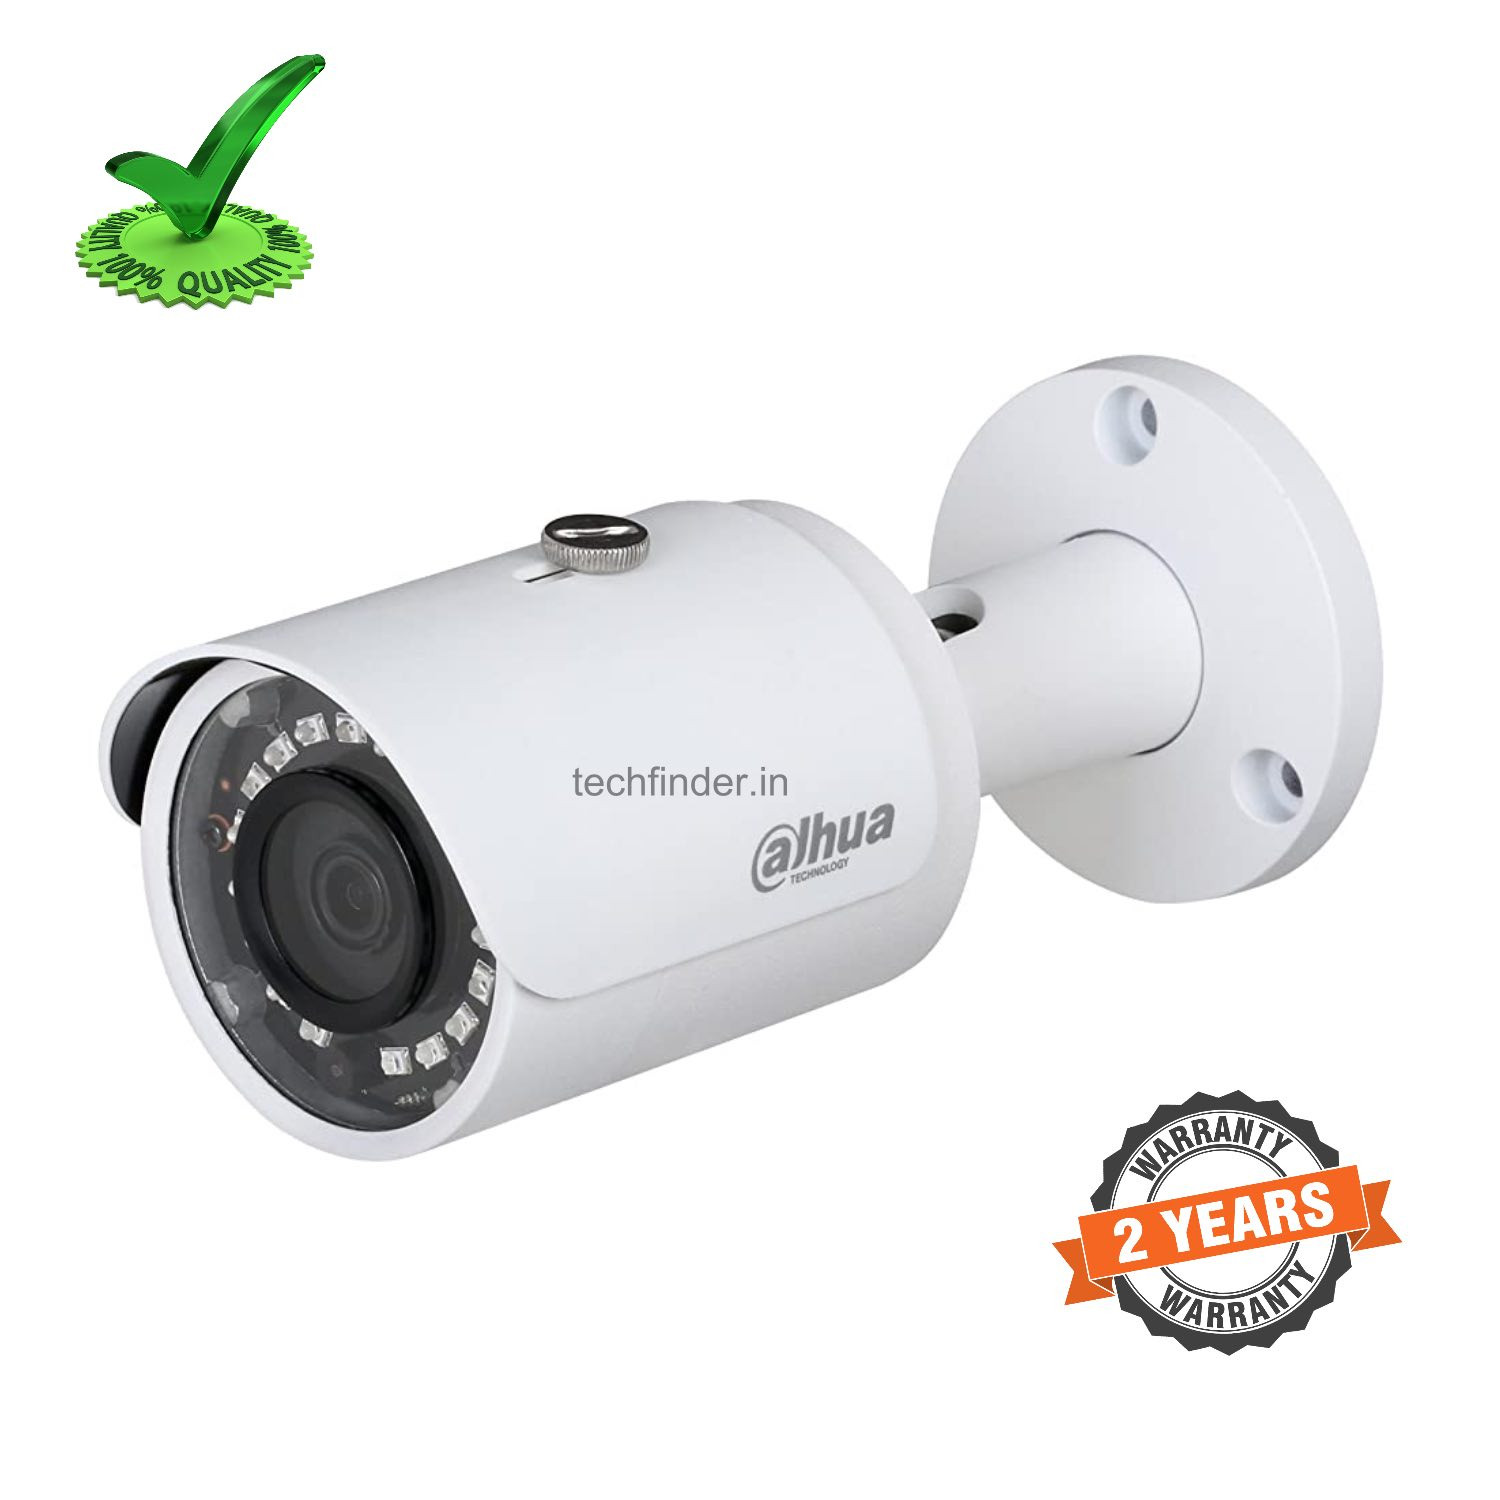 Dahua DH-IPC-HFW12B0SP-L 2MP IR Mini-Bullet Network IP Camera